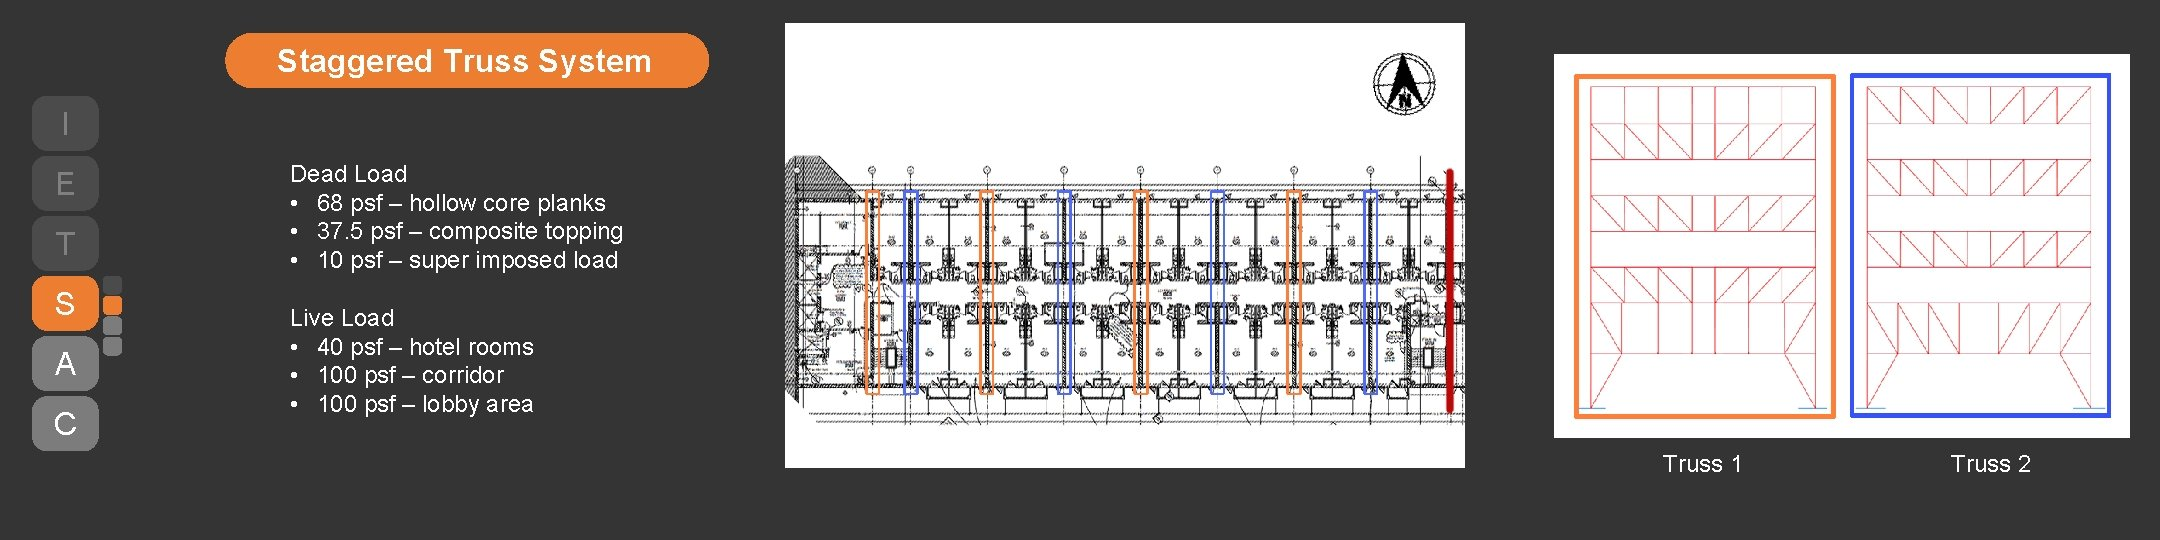 Staggered Truss System I E T S A C Dead Load • 68 psf